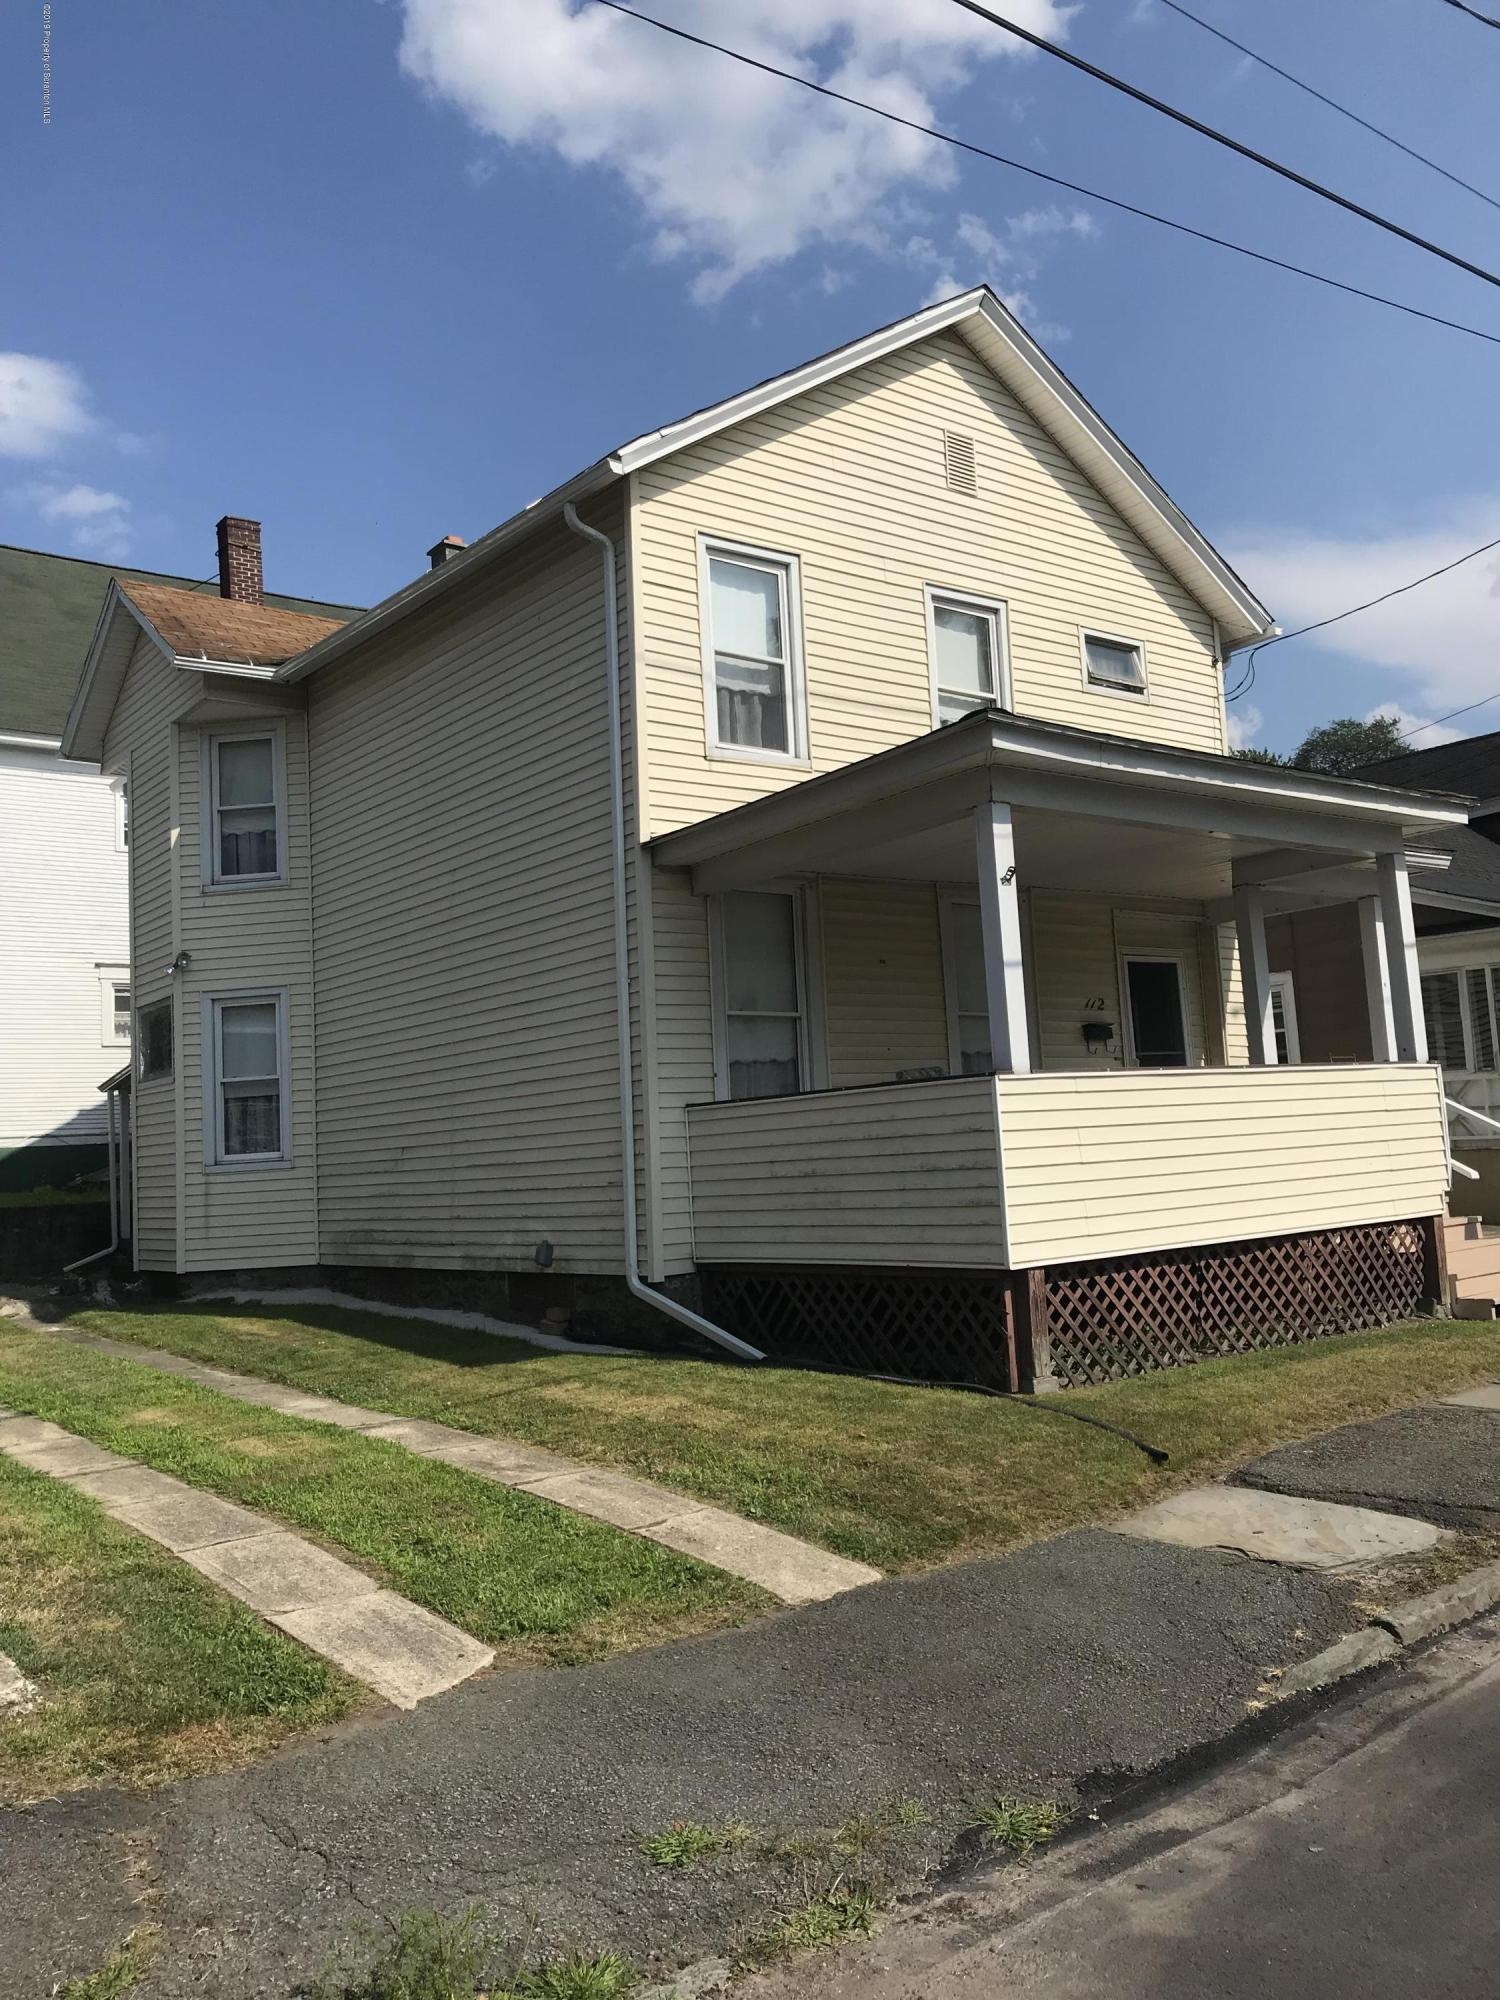 112 Terrace Street, Carbondale, Pennsylvania 18407, 3 Bedrooms Bedrooms, 7 Rooms Rooms,2 BathroomsBathrooms,Single Family,For Sale,Terrace,19-3958